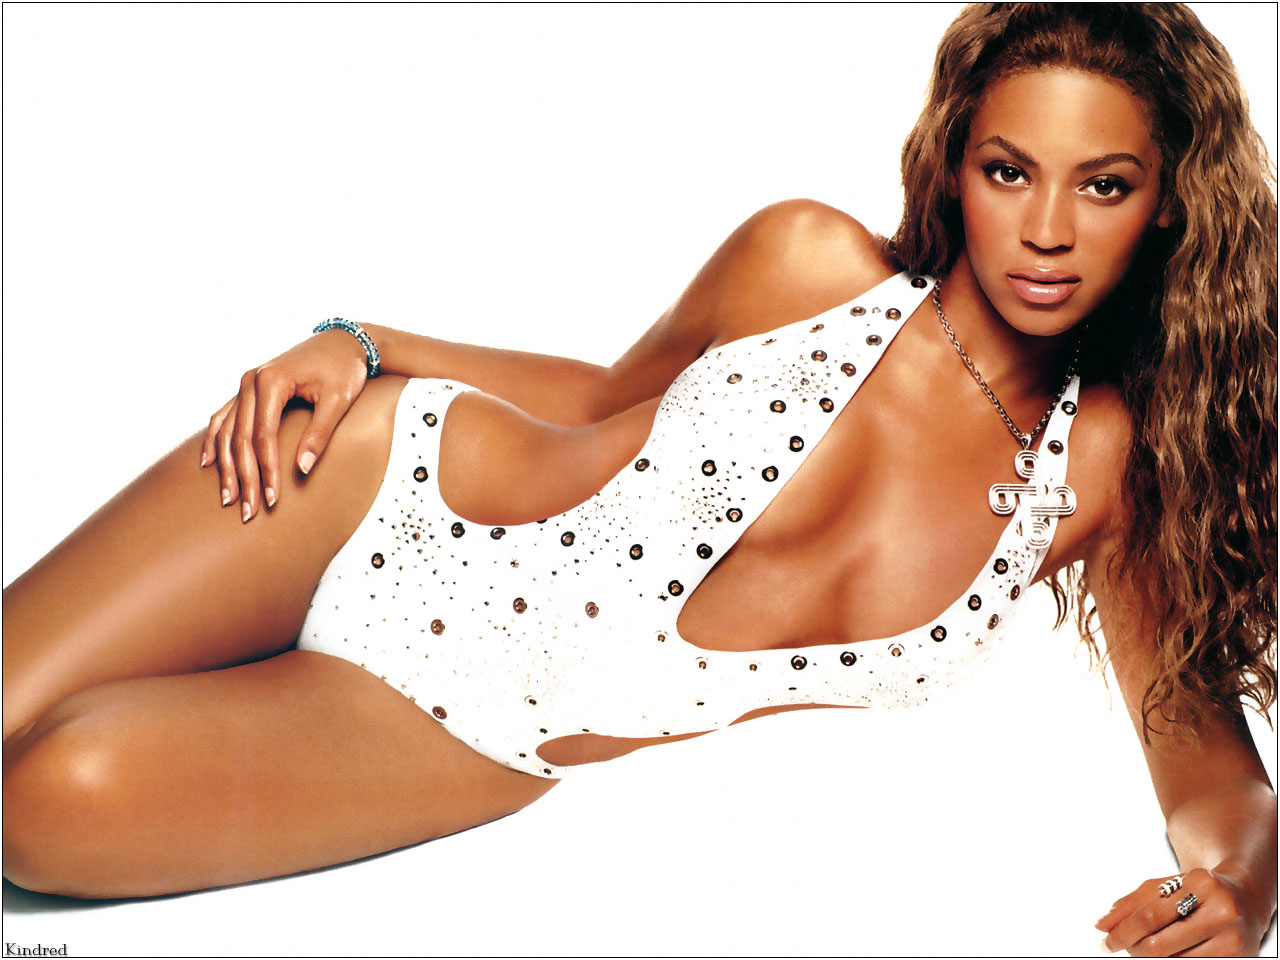 Kindred_SDC2003_478_Beyonce_Knowles.jpg